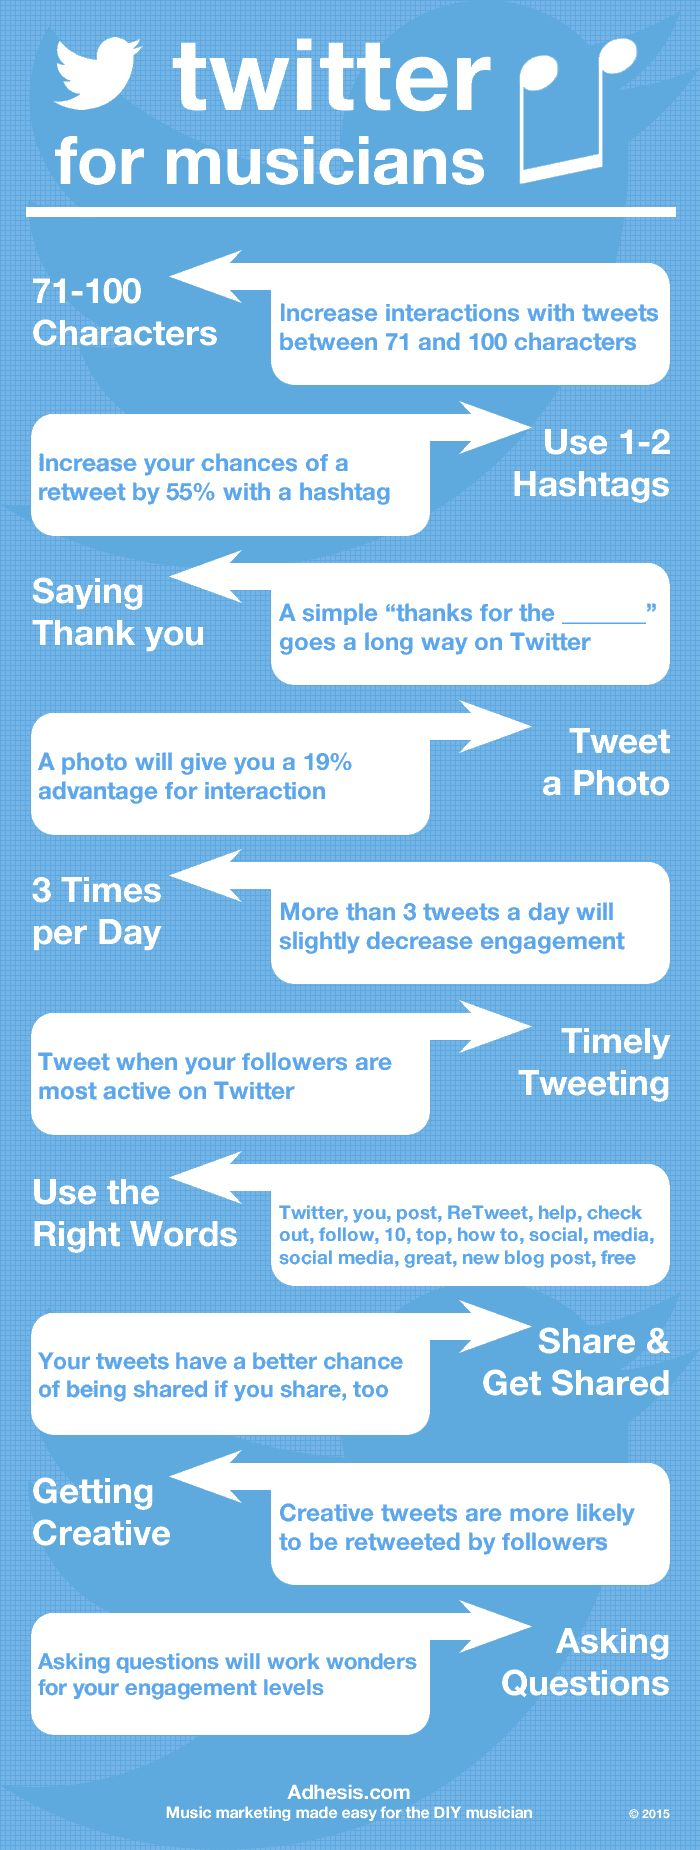 http://adhesis.com/online/2589/twitter-tips-for-musicians/ - Twitter Tips for Musicians. Twitter is a very powerful social tool for developing and maintaining relationships with your fans, building industry connections, and staying up to date with industry news. Unfortunately, however, it is a tool used by many artists only for thoughtless promotion. The 3 most common Twitter